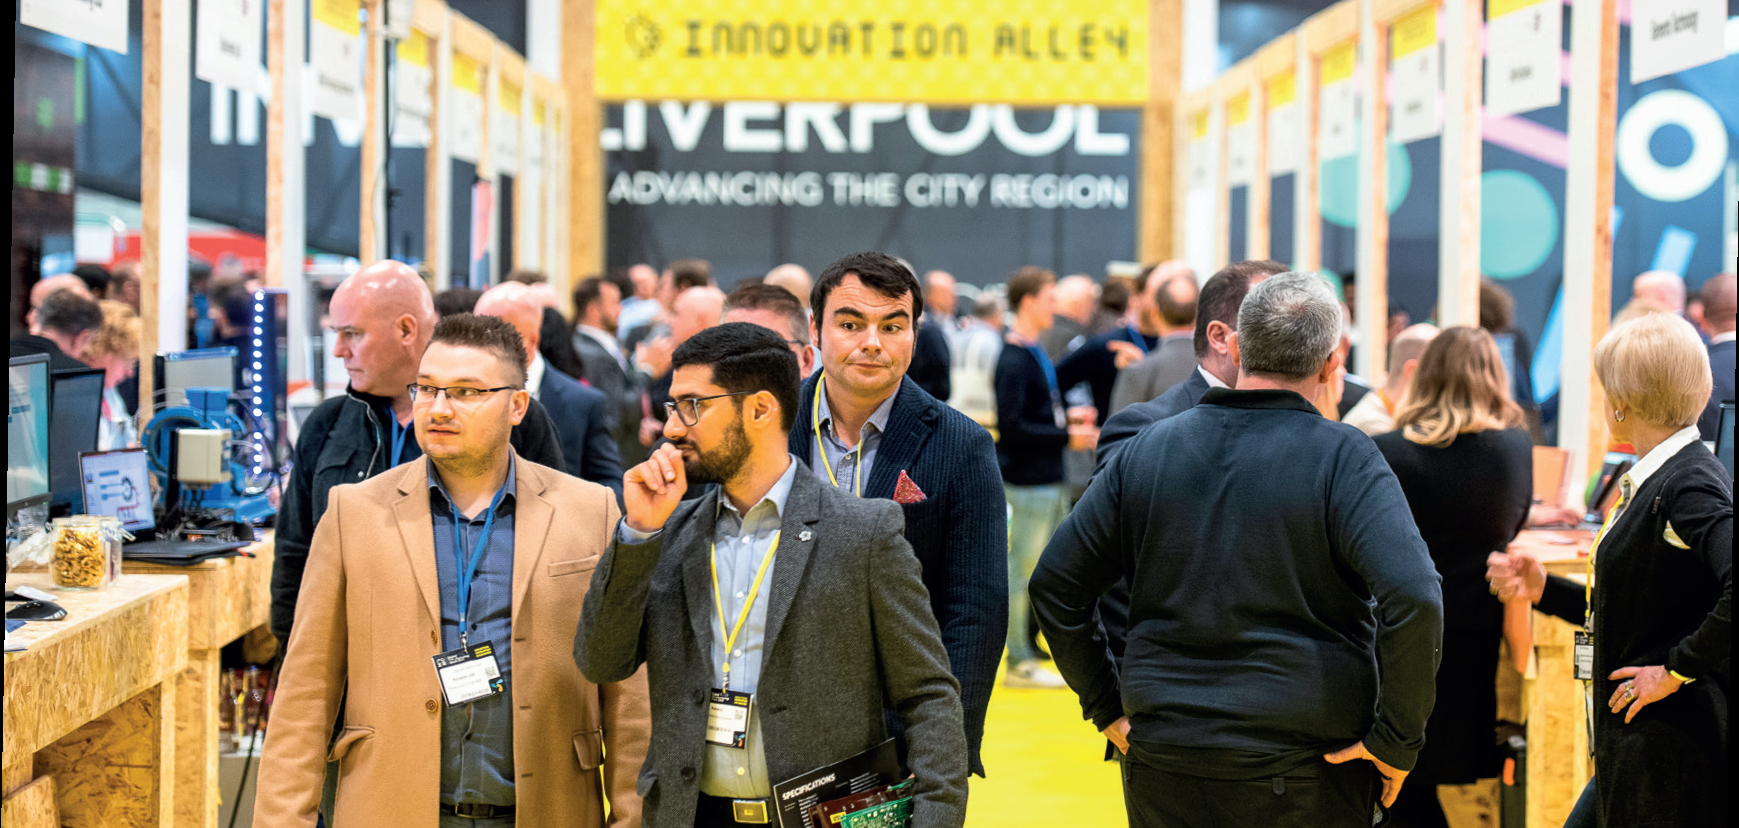 Innovation Alley 2019 - image courtesy of The Manufacturer